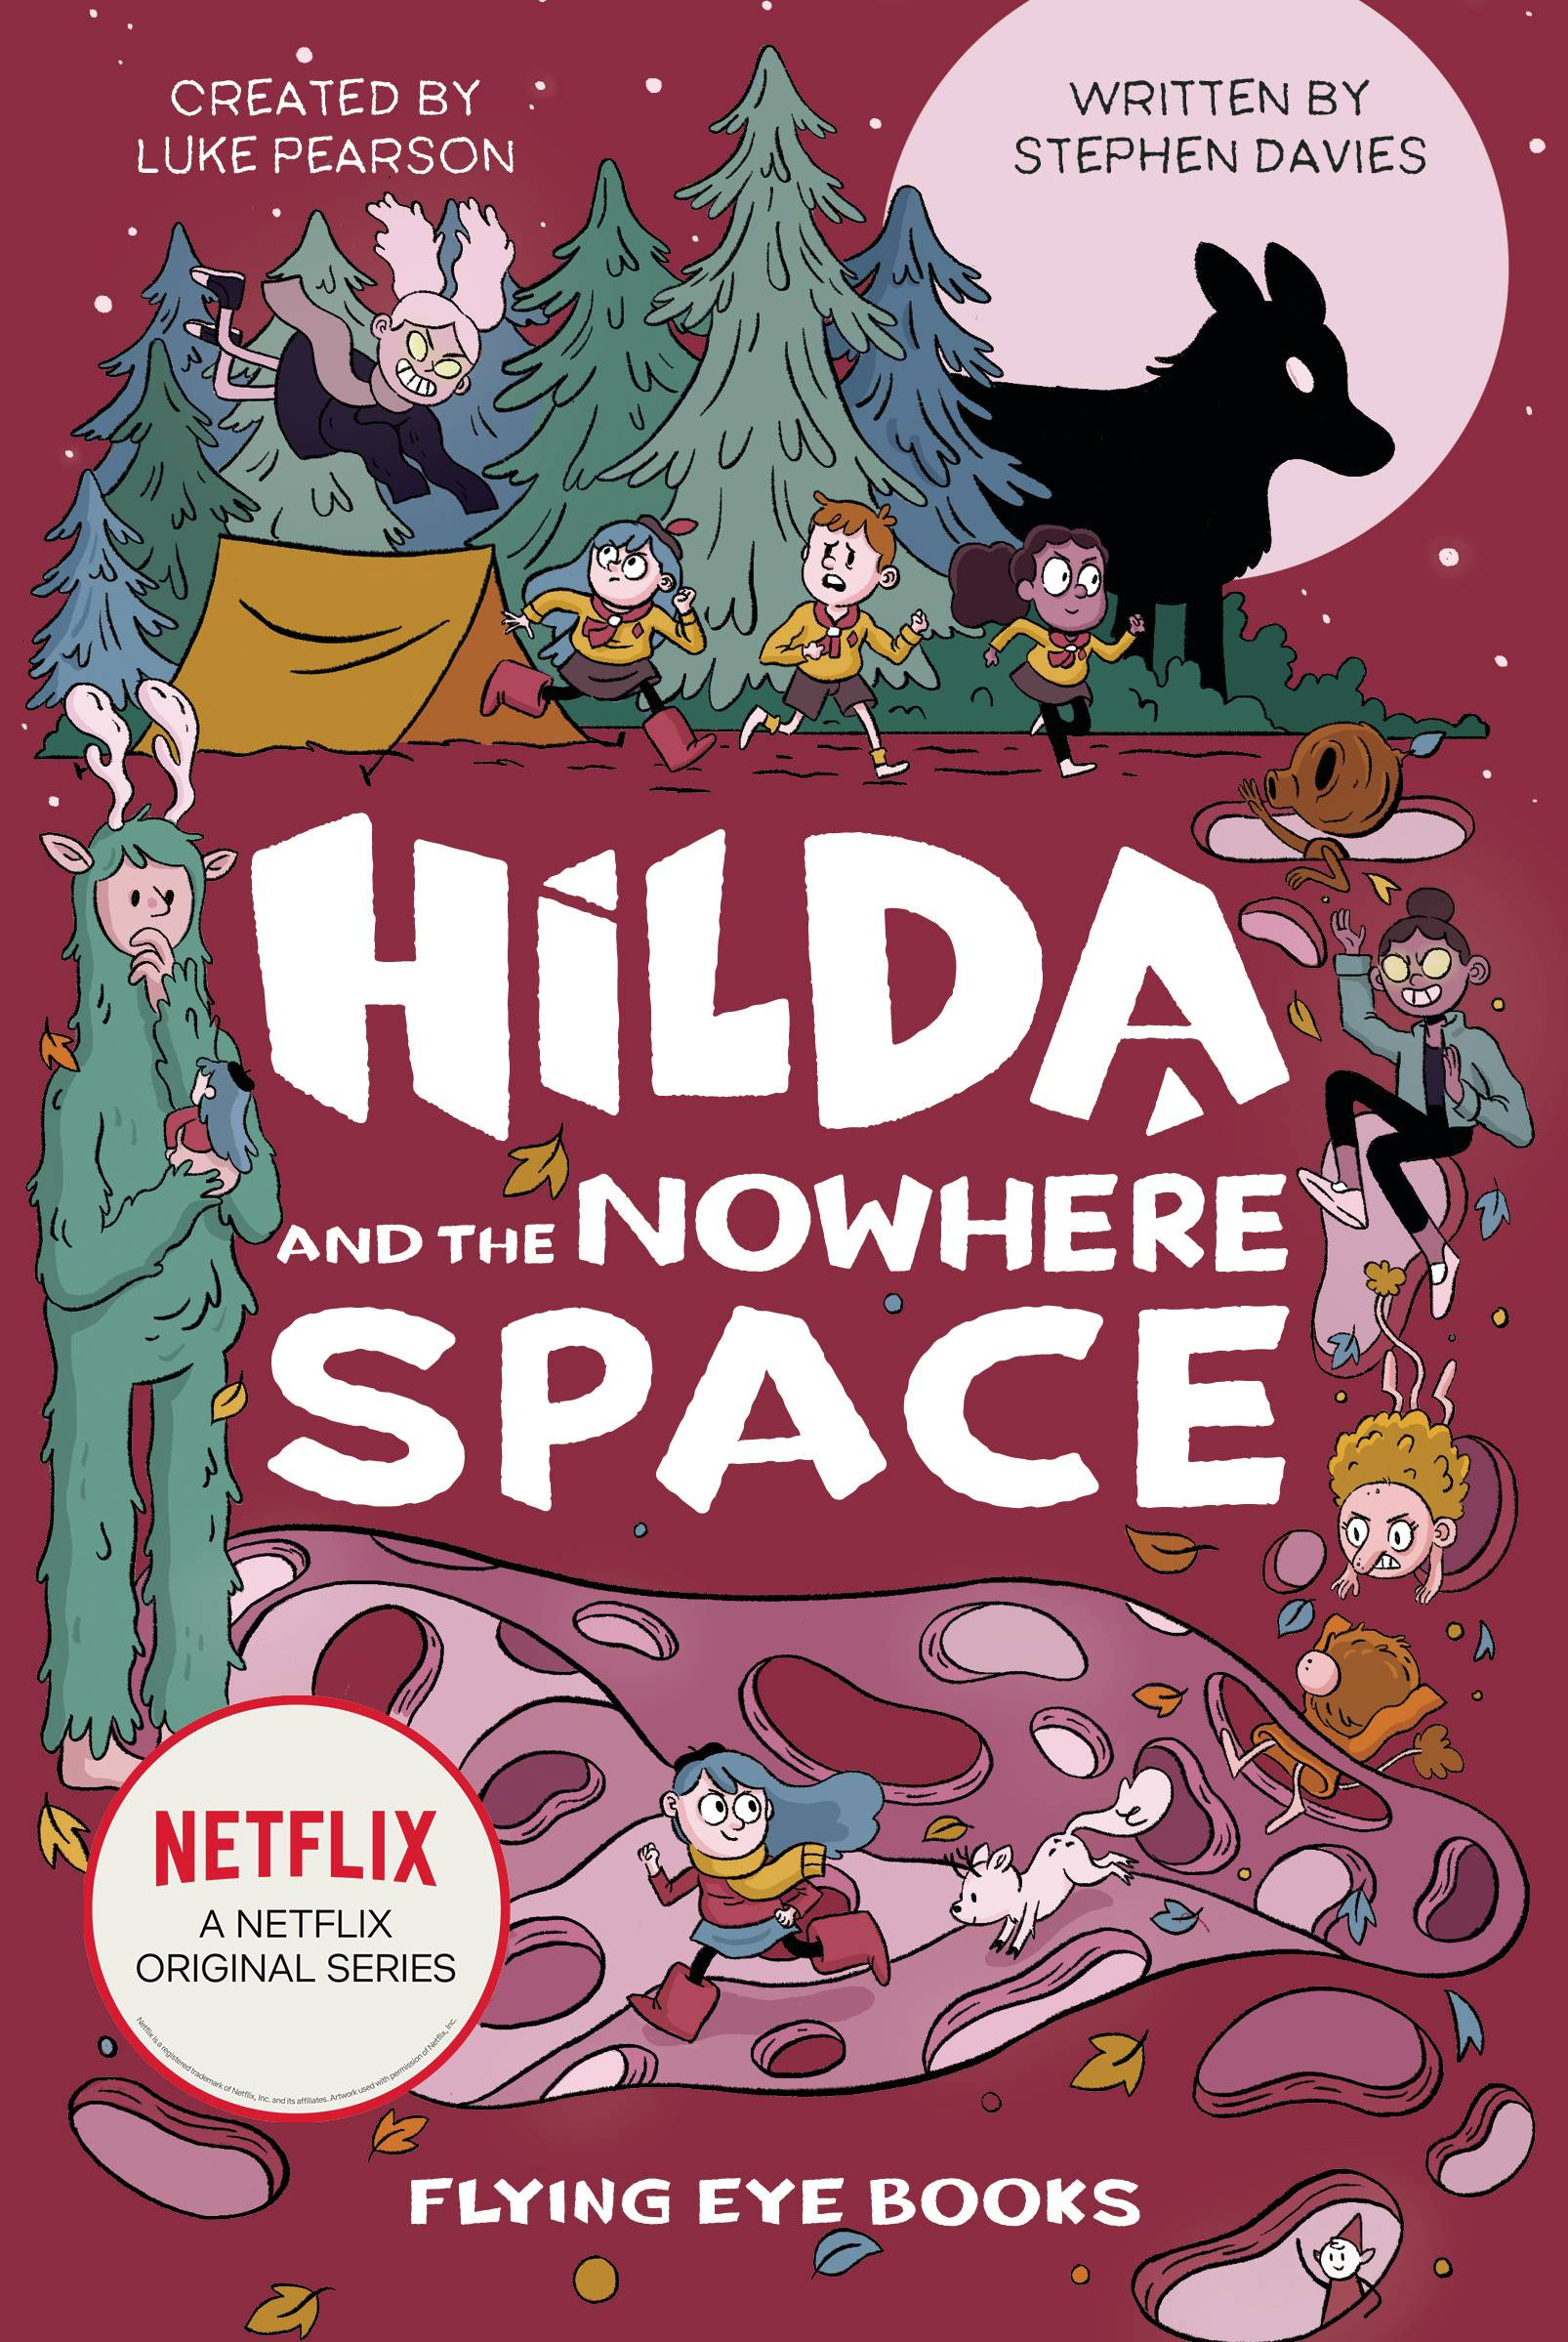 HILDA & NOWHERE SPACE NETFLIX TIE IN NOVEL